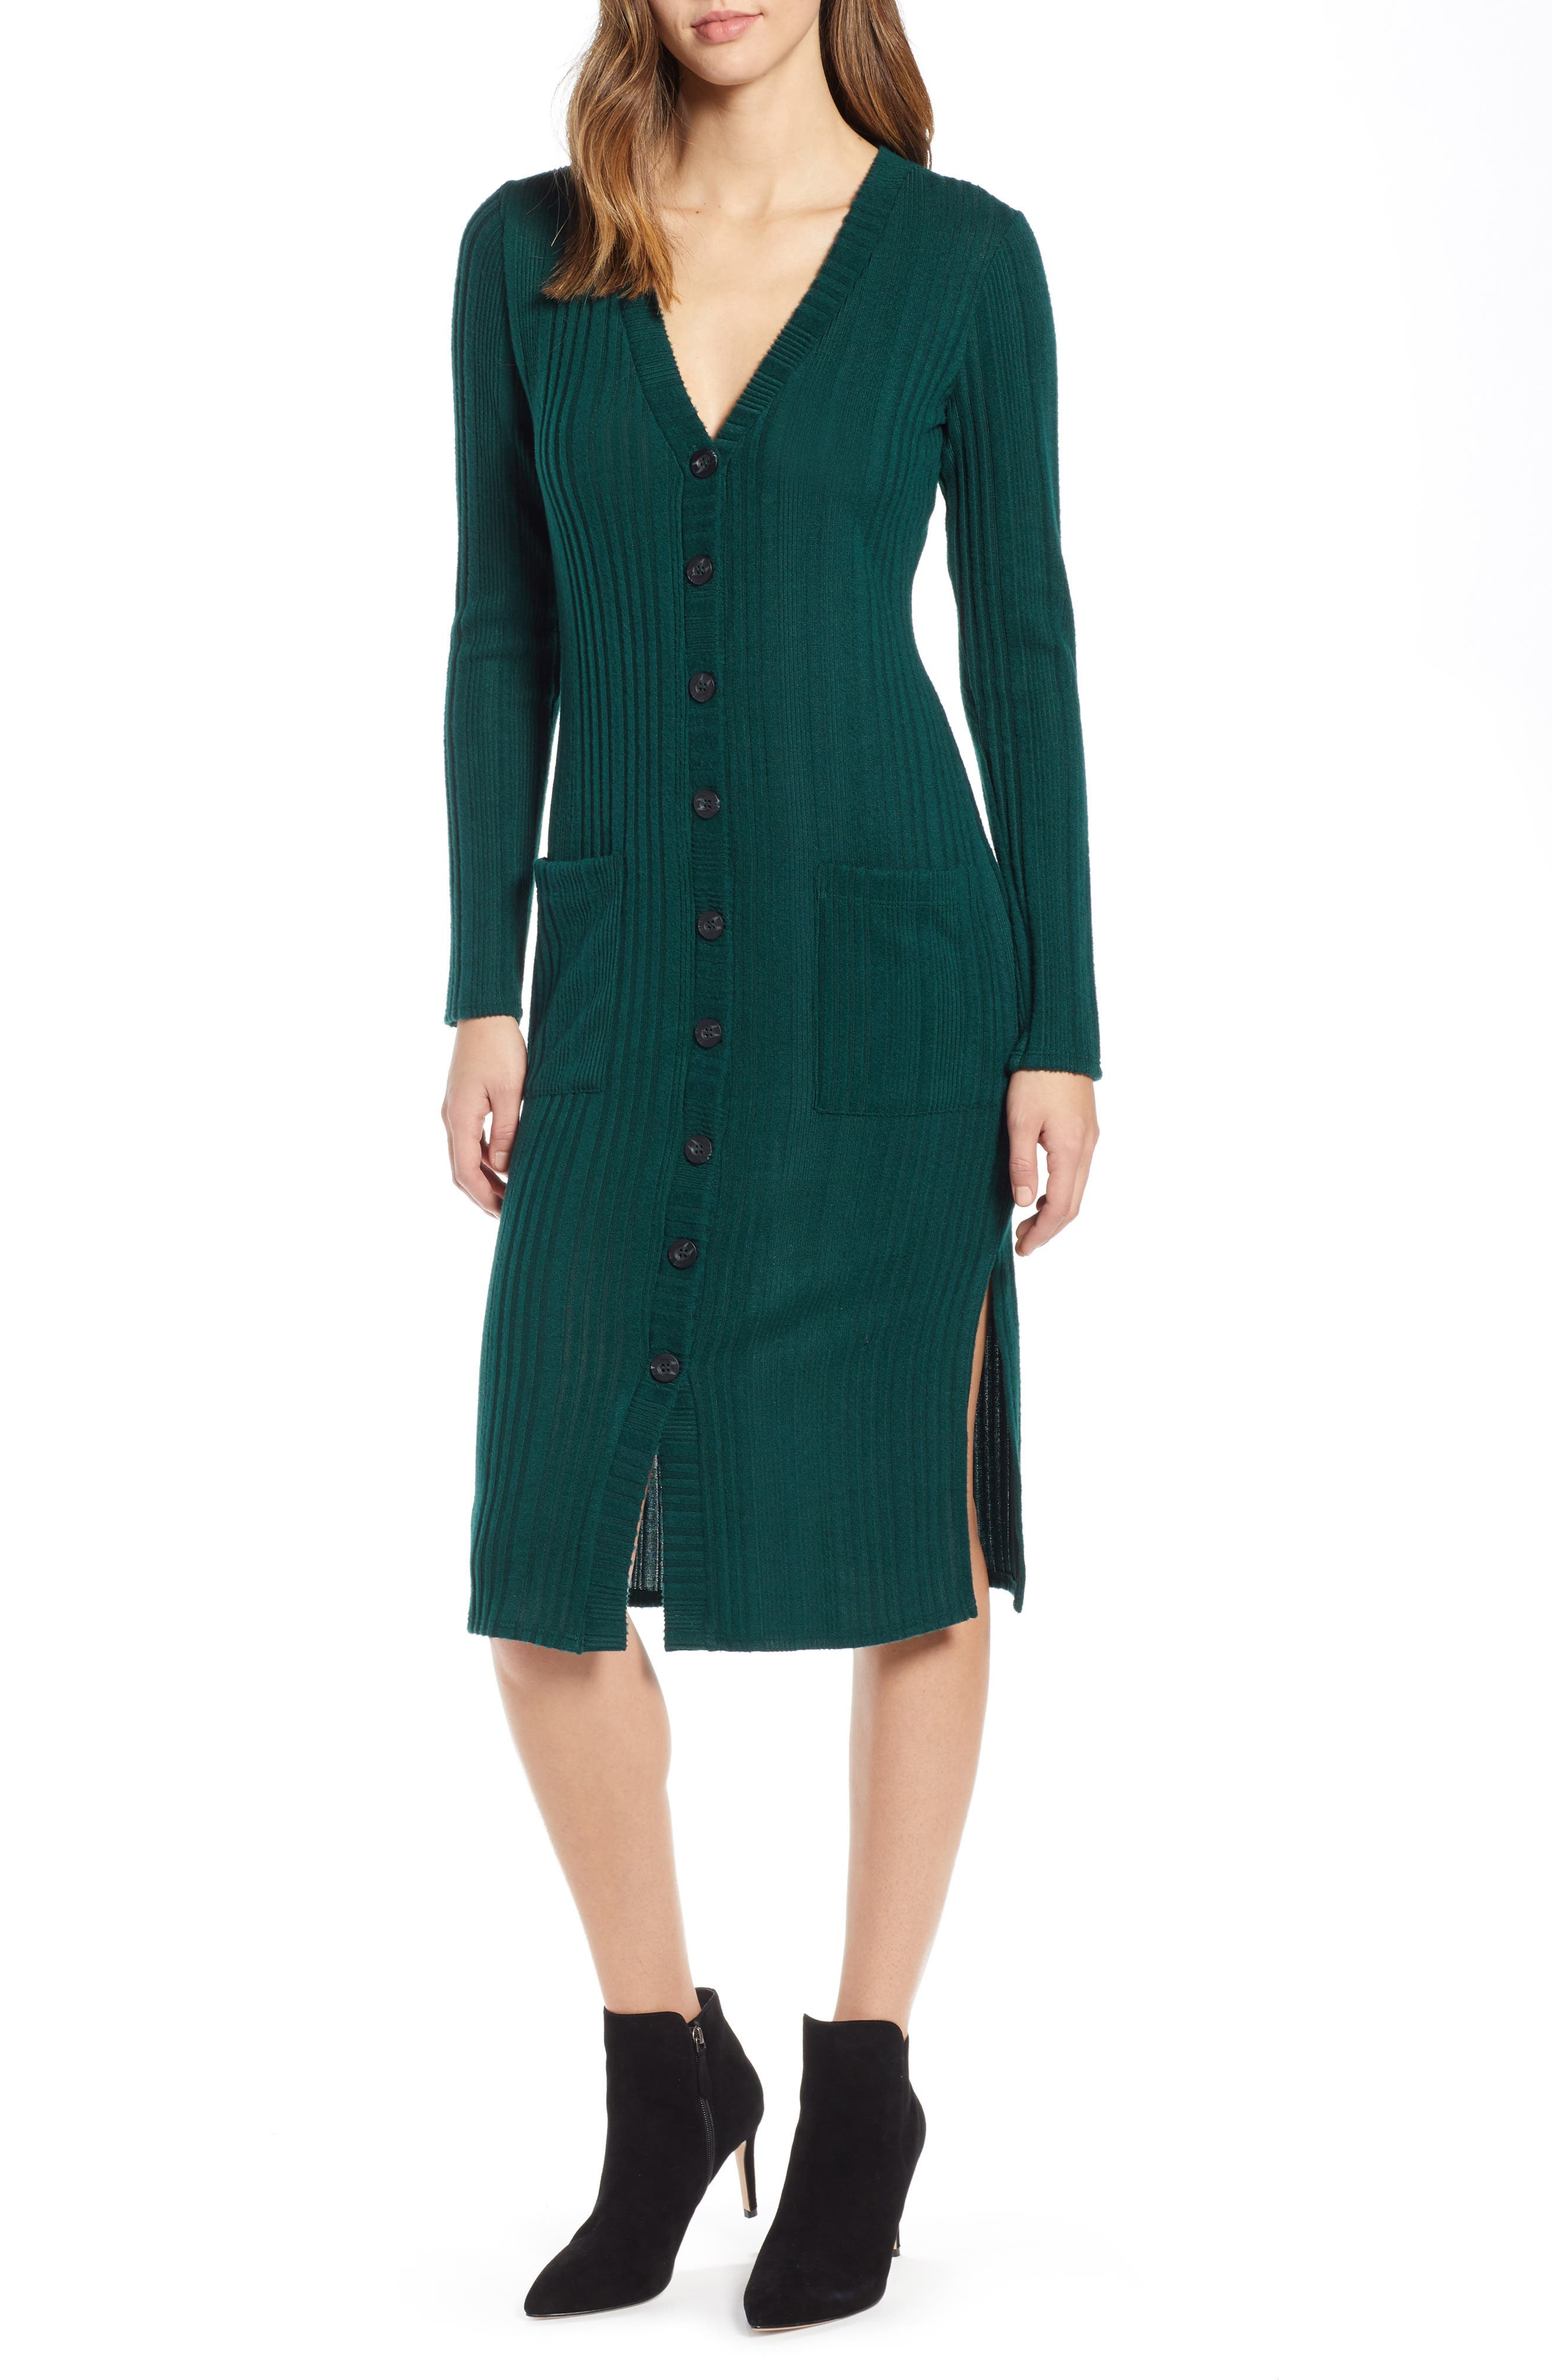 Socialite Sweater Dress, Green